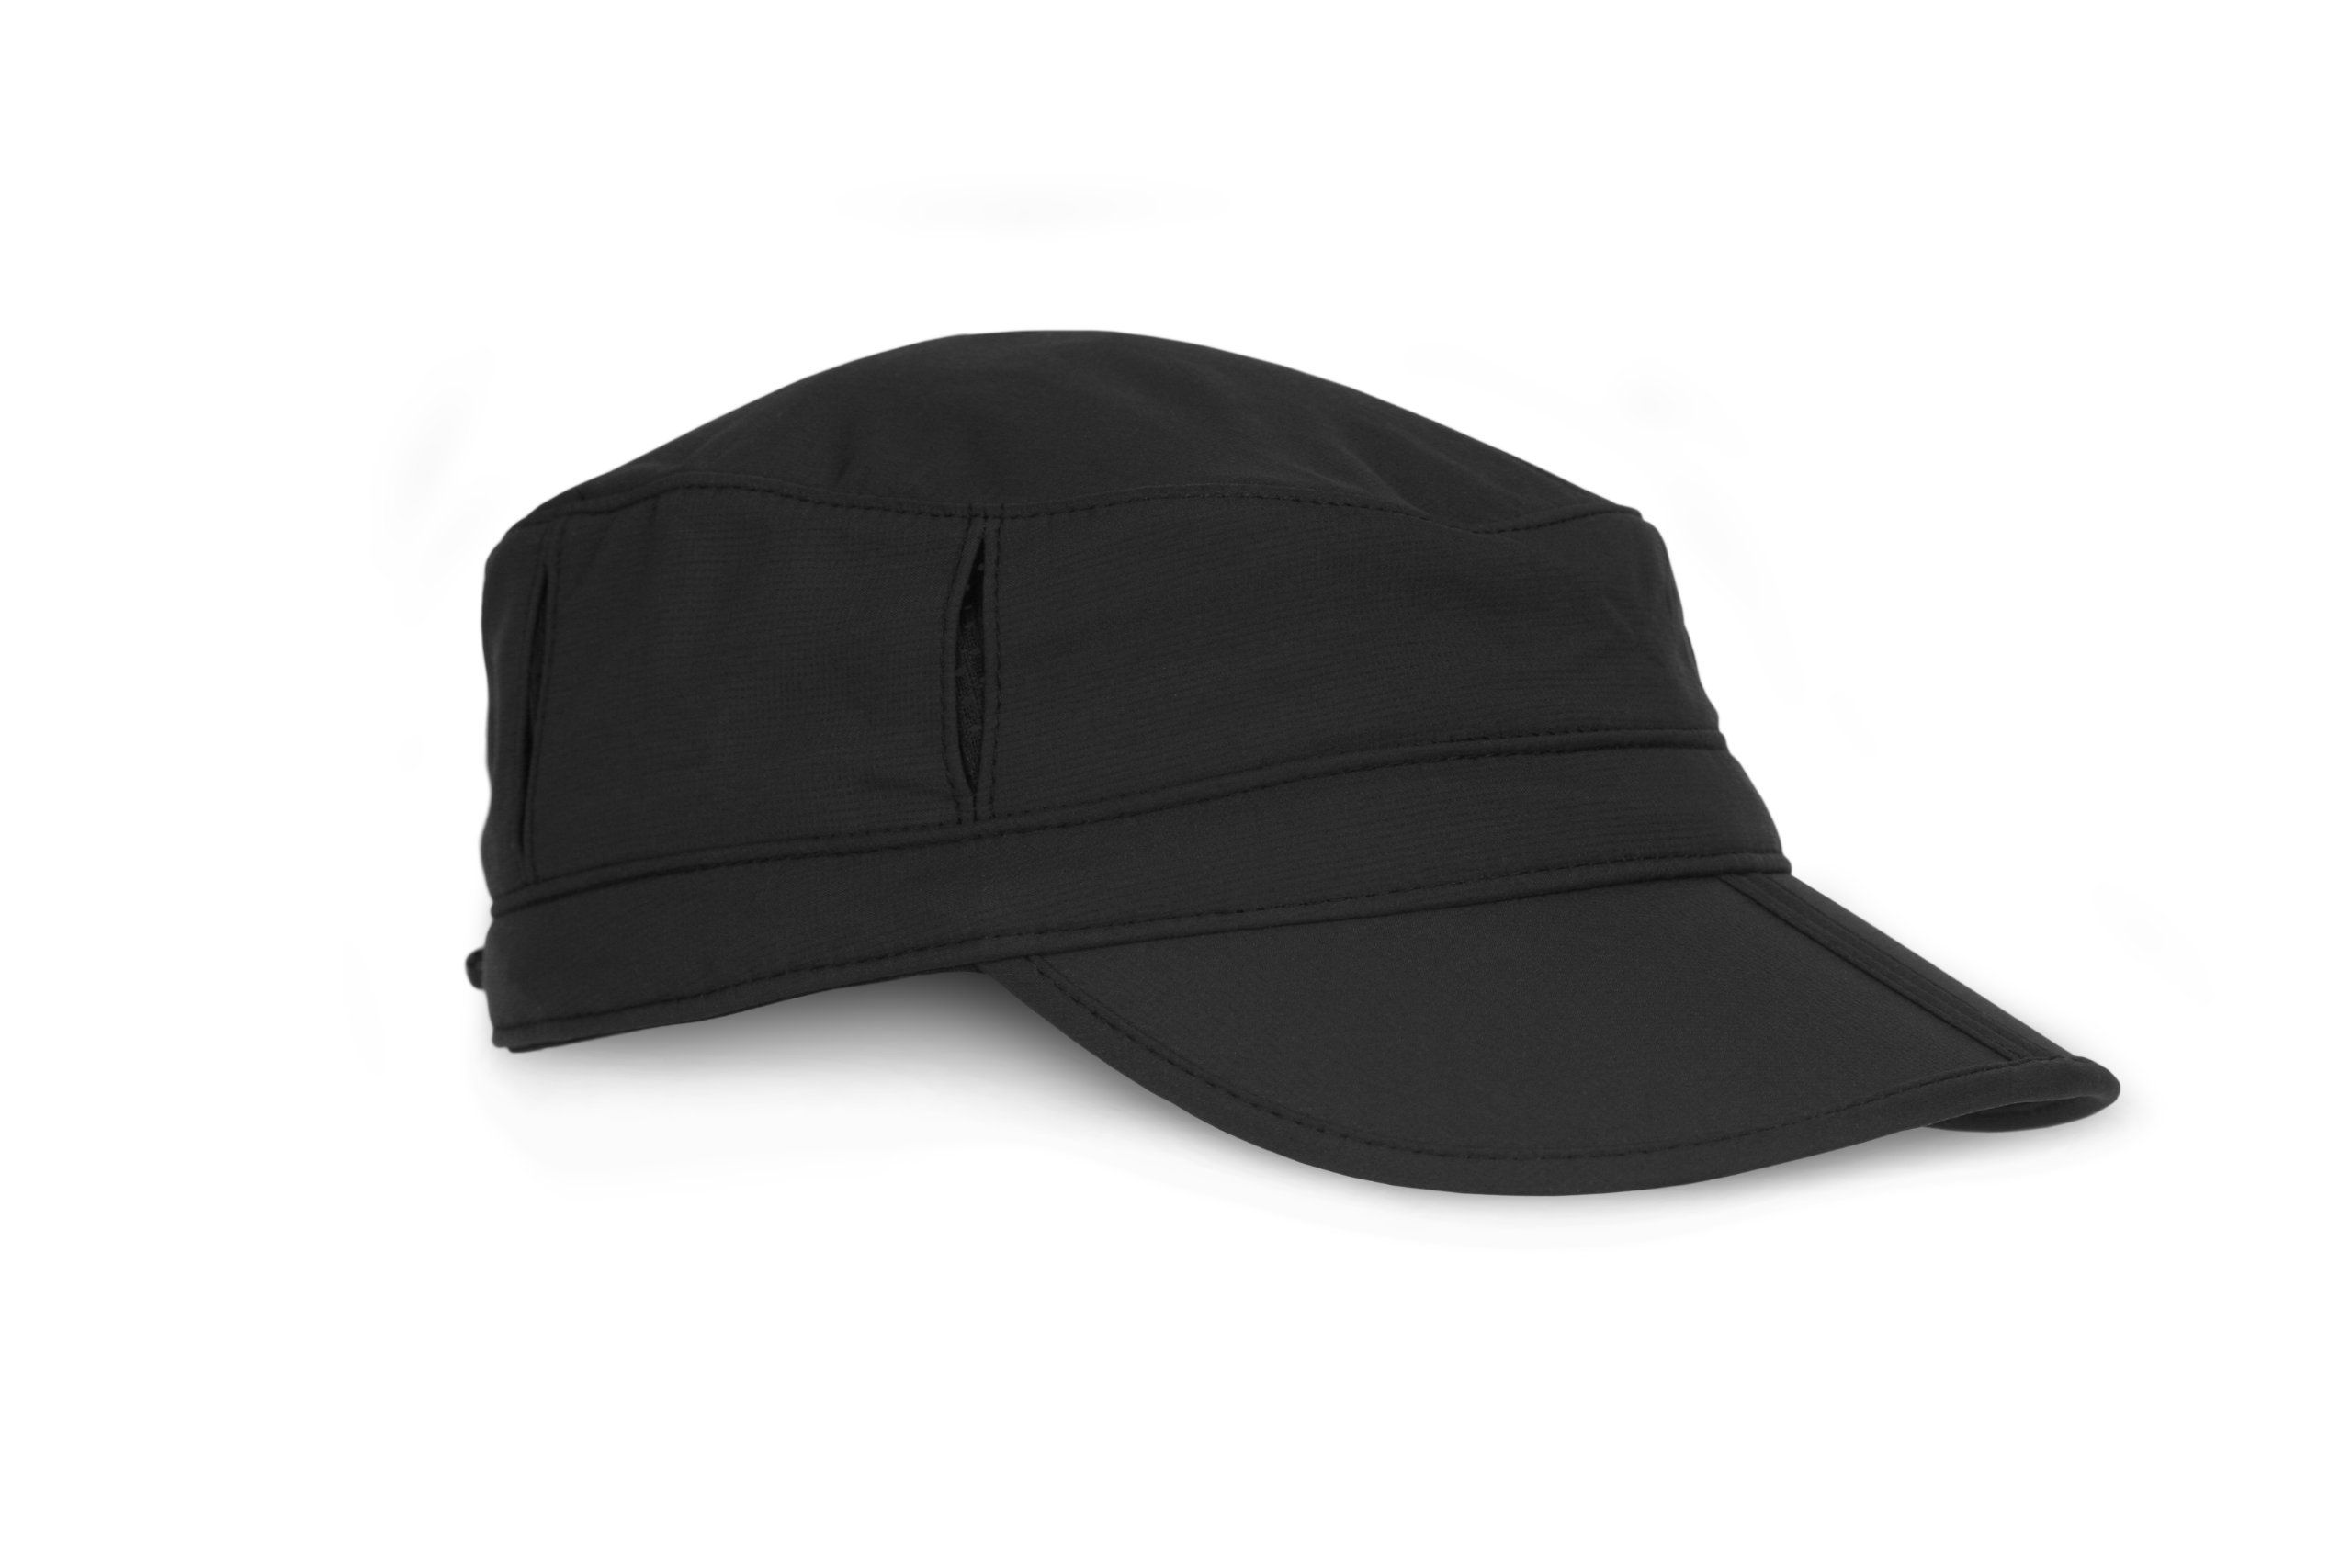 Sunday Afternoons Sun Tripper Cap, Black, Large